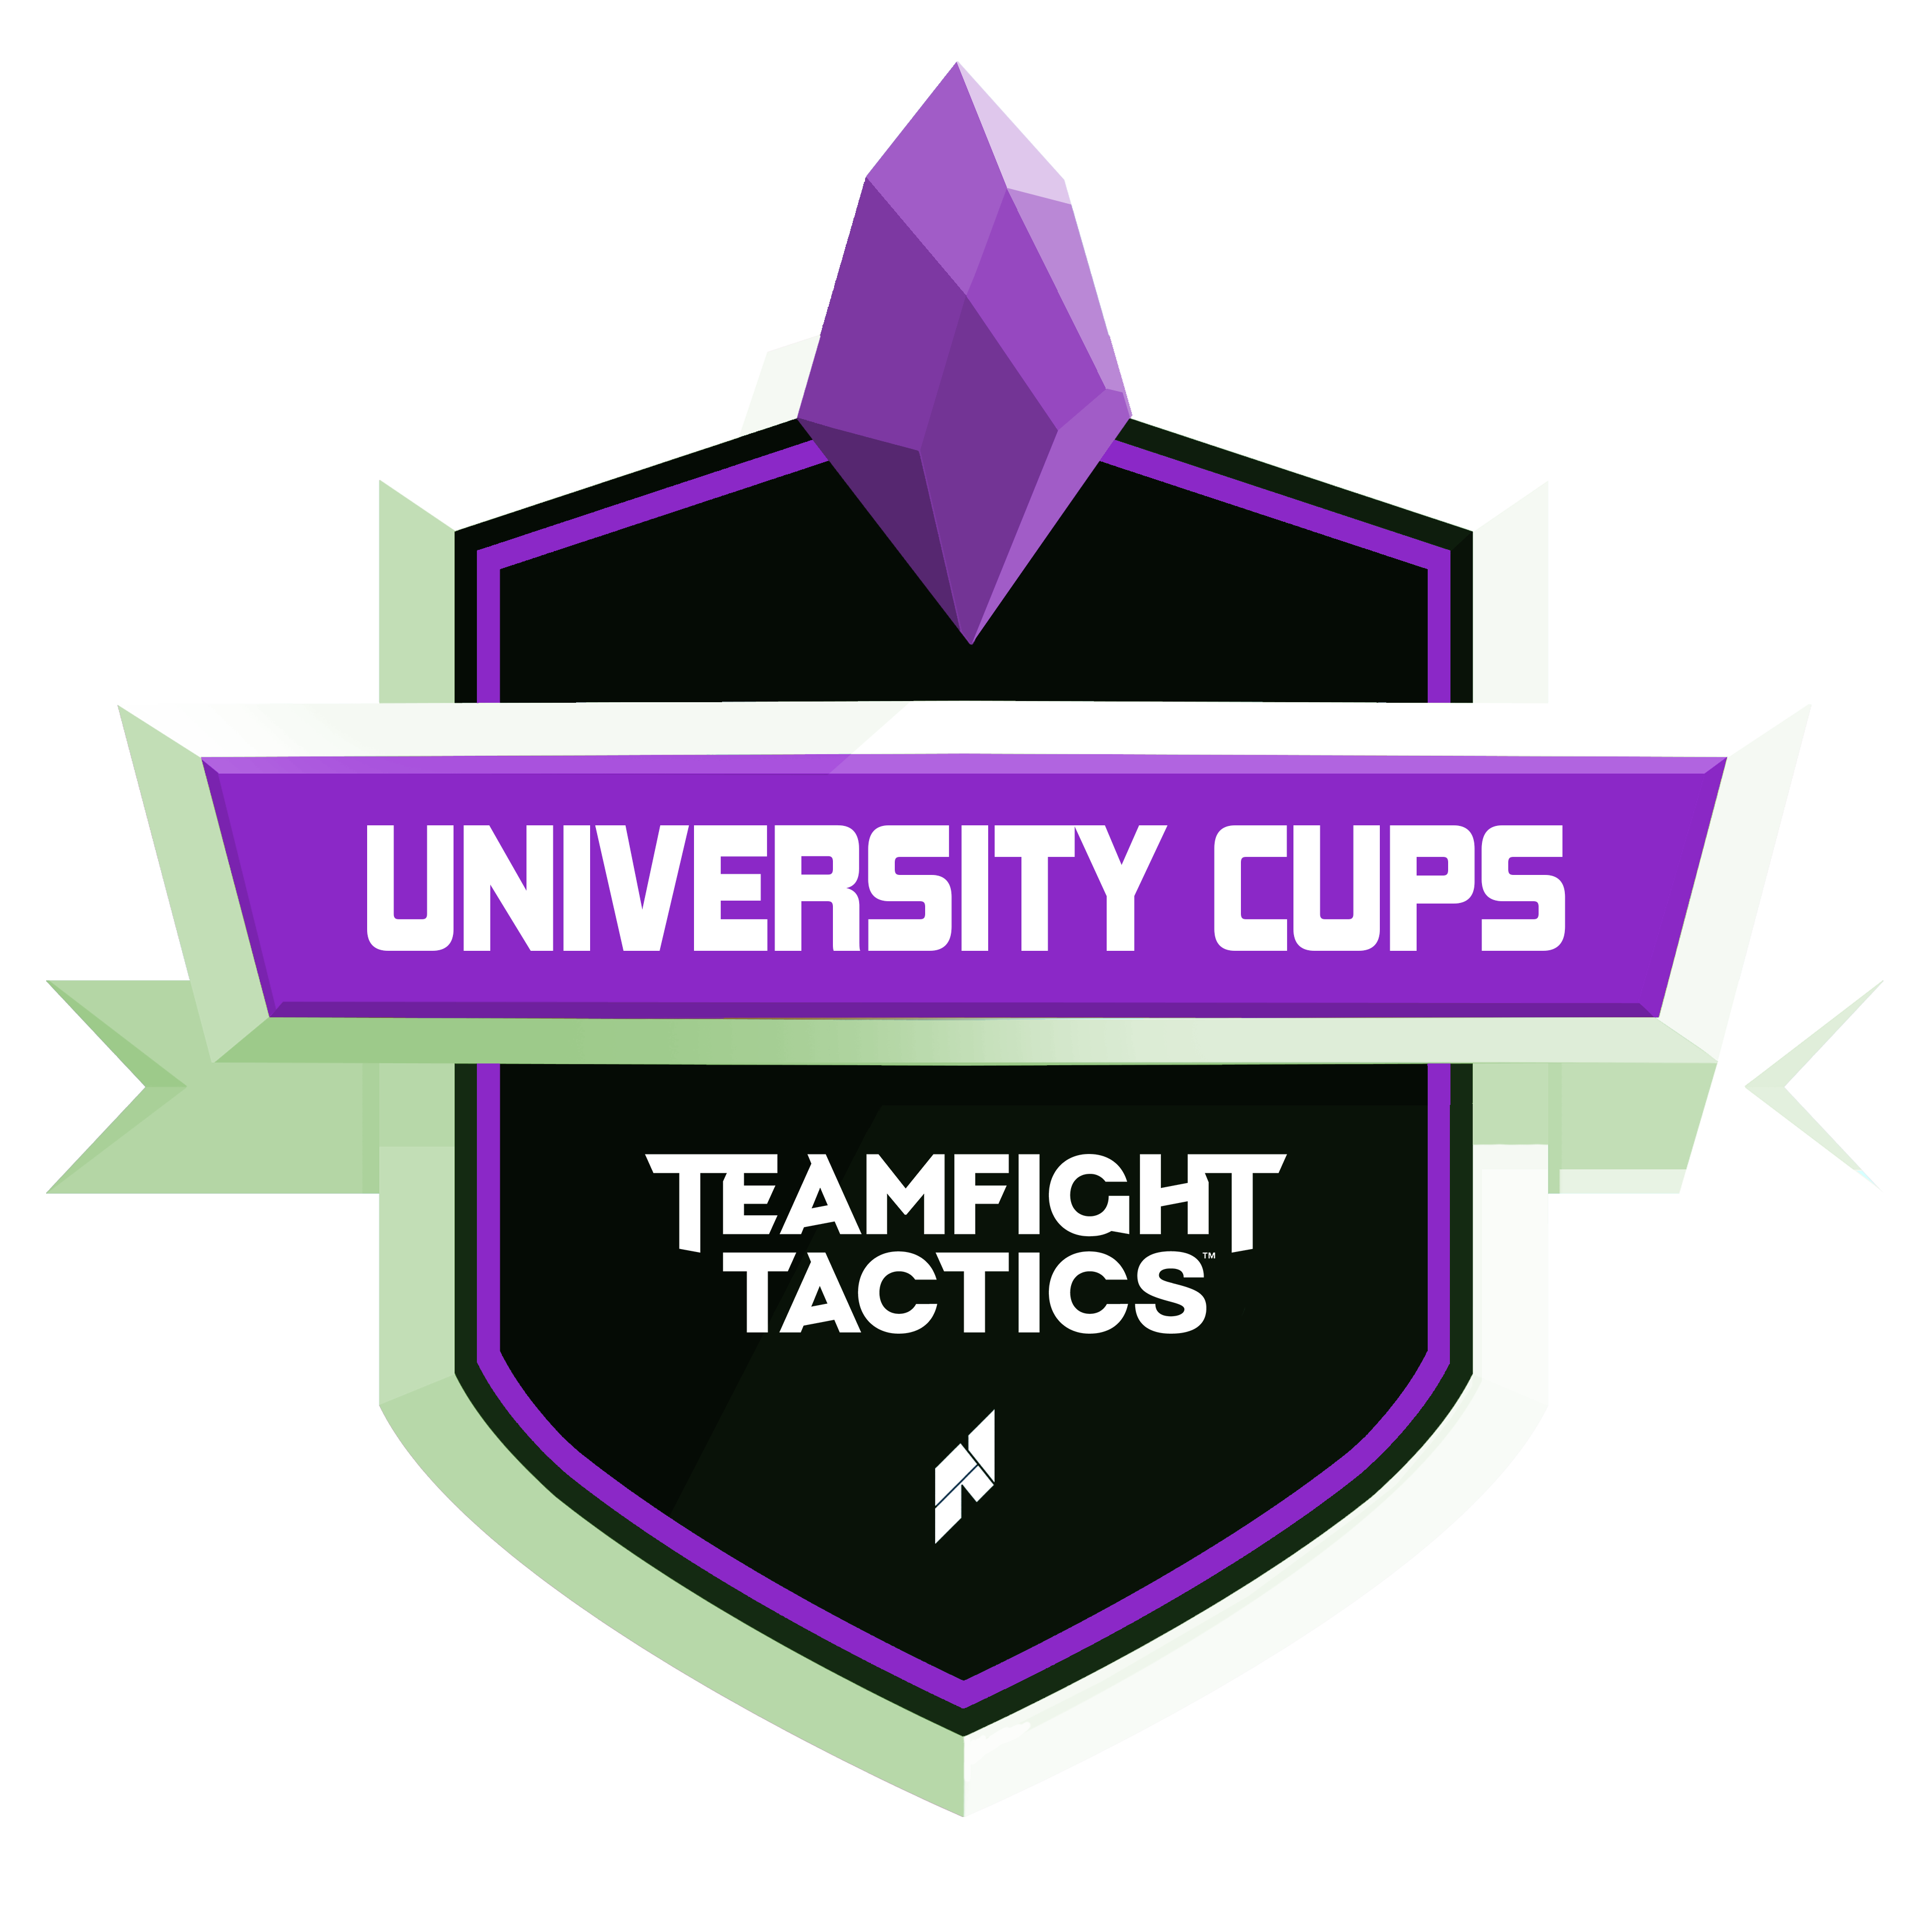 Teamfight Tactics: Weekly Cups